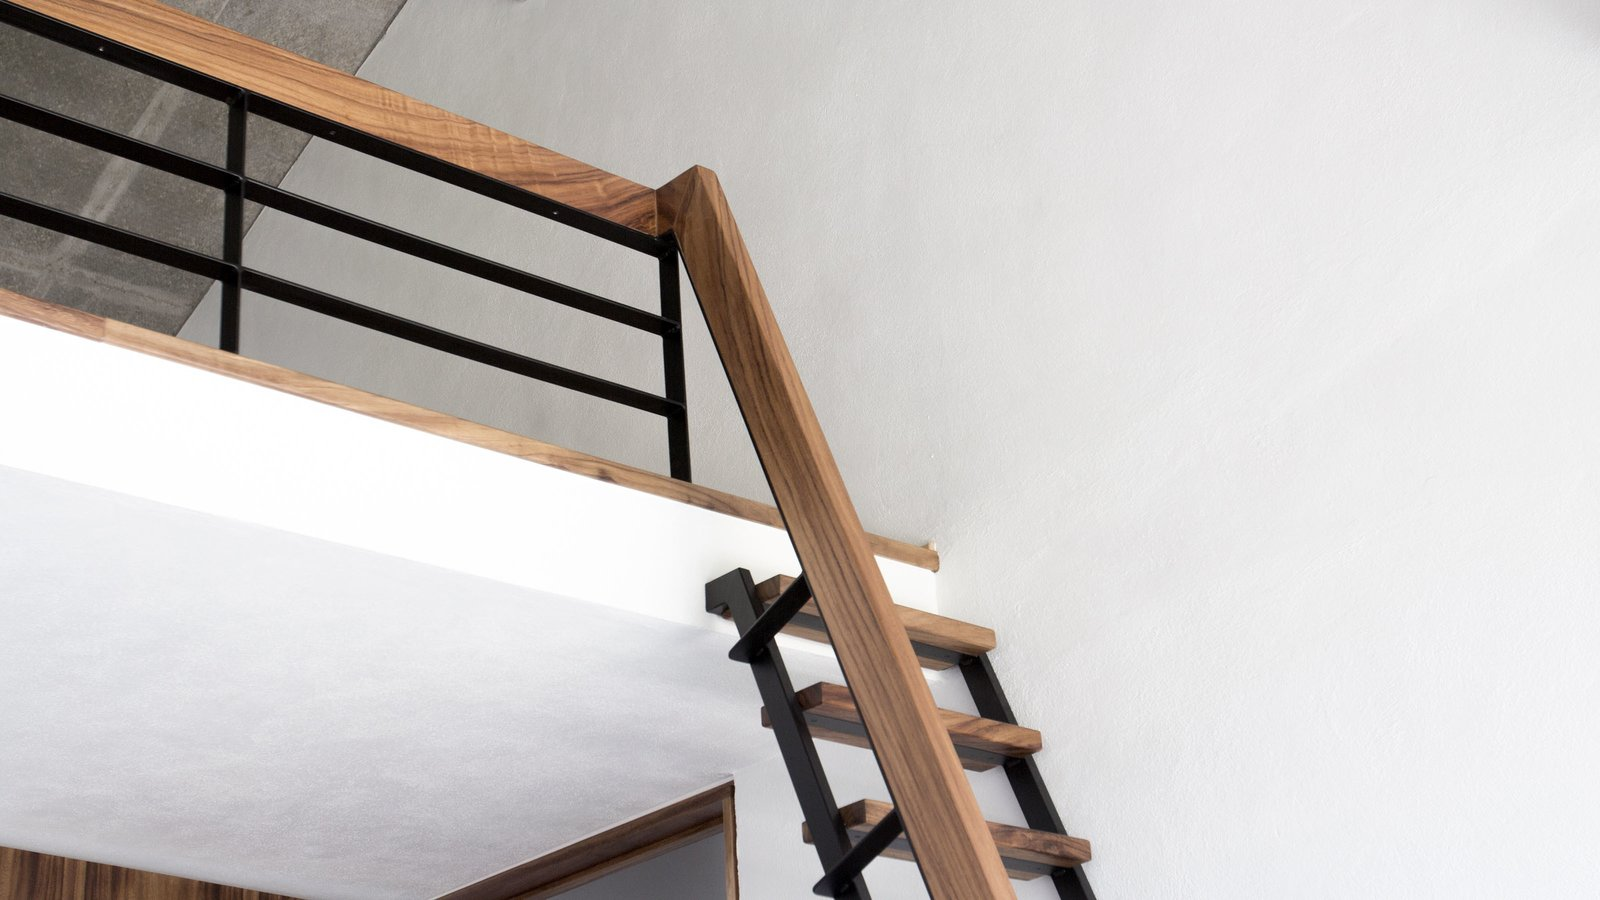 Staircase, Metal Railing, Wood Tread, Metal Tread, and Wood Railing  Casa Paraíso by DCPP by LCMX